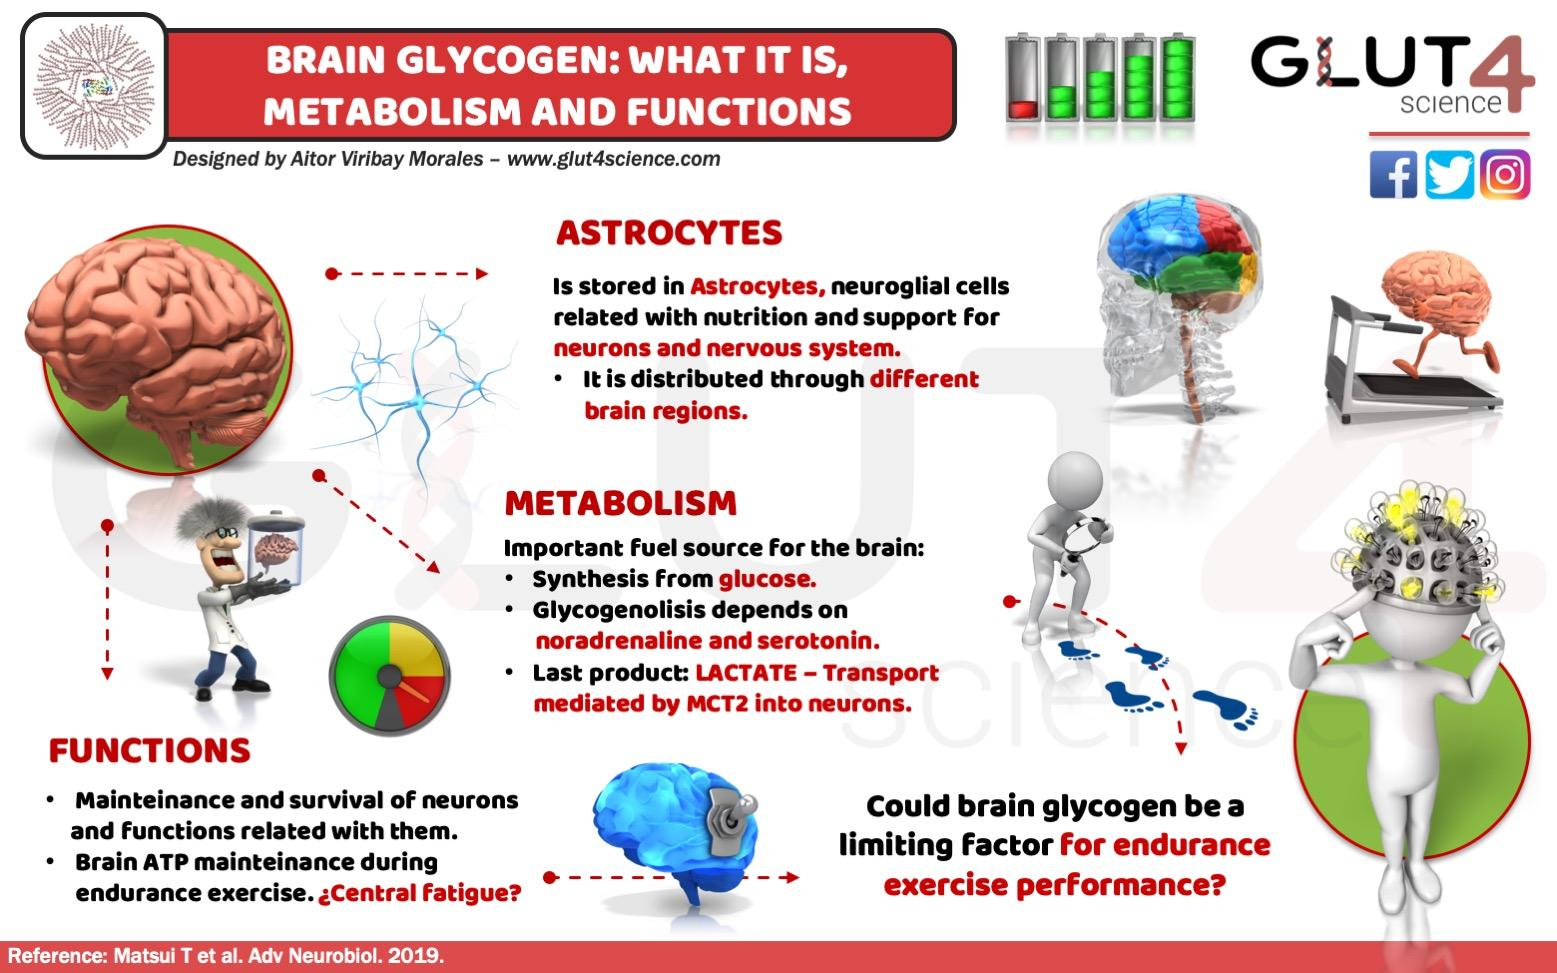 Brain Glycogen in Astrocytes